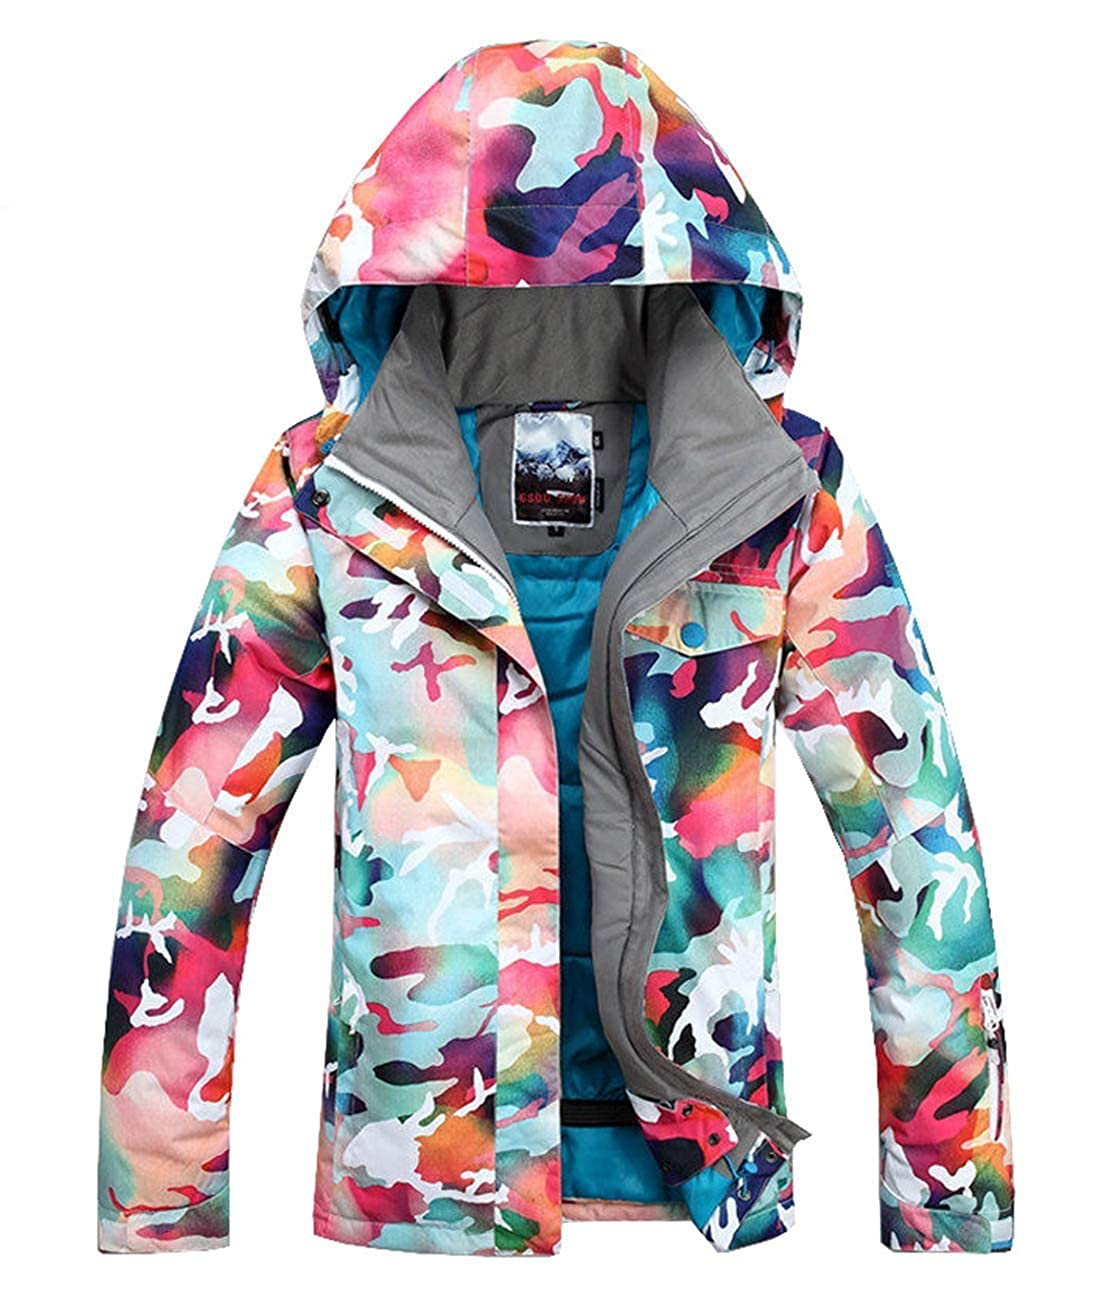 Image of Jackets Women's Insulated Waterproof Ski & Snowboard Jacket Bright Colored Windproof Snow Coat